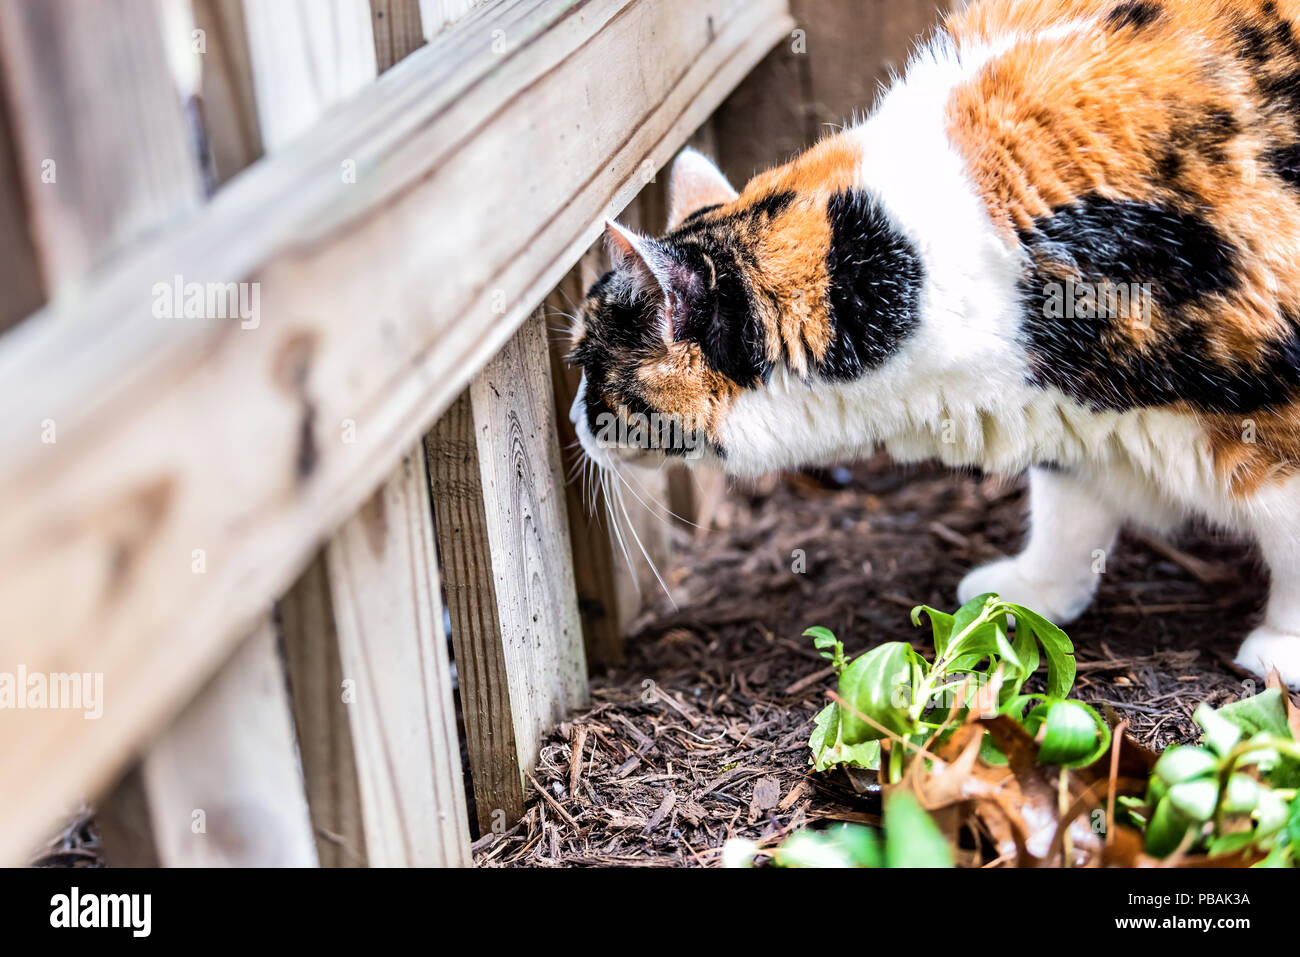 Closeup of calico cat face outside sniffing, smelling scent in garden, marking territory, house or home front, back yard with mulch, looking through w - Stock Image